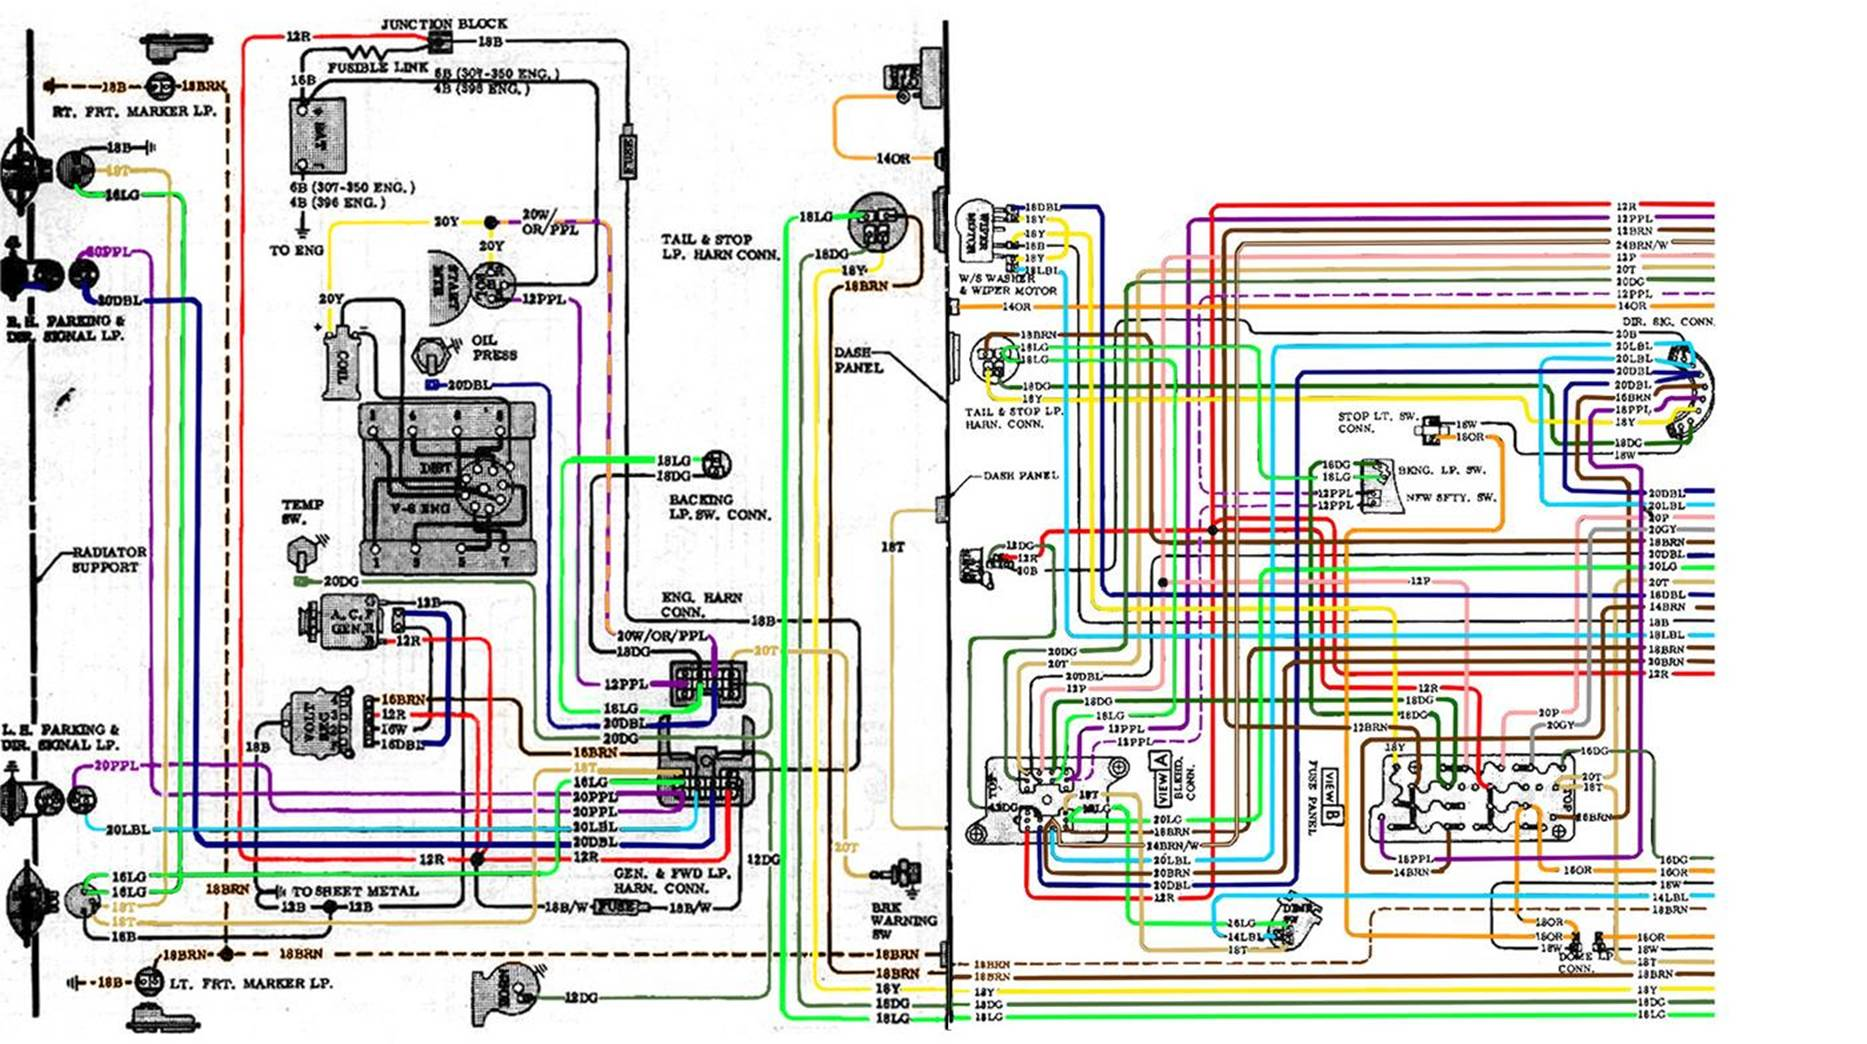 1985 chevy truck ignition switch wiring diagram danfoss randall 3 port valve 1978 c10 schematic for 1971 pickup data oreo